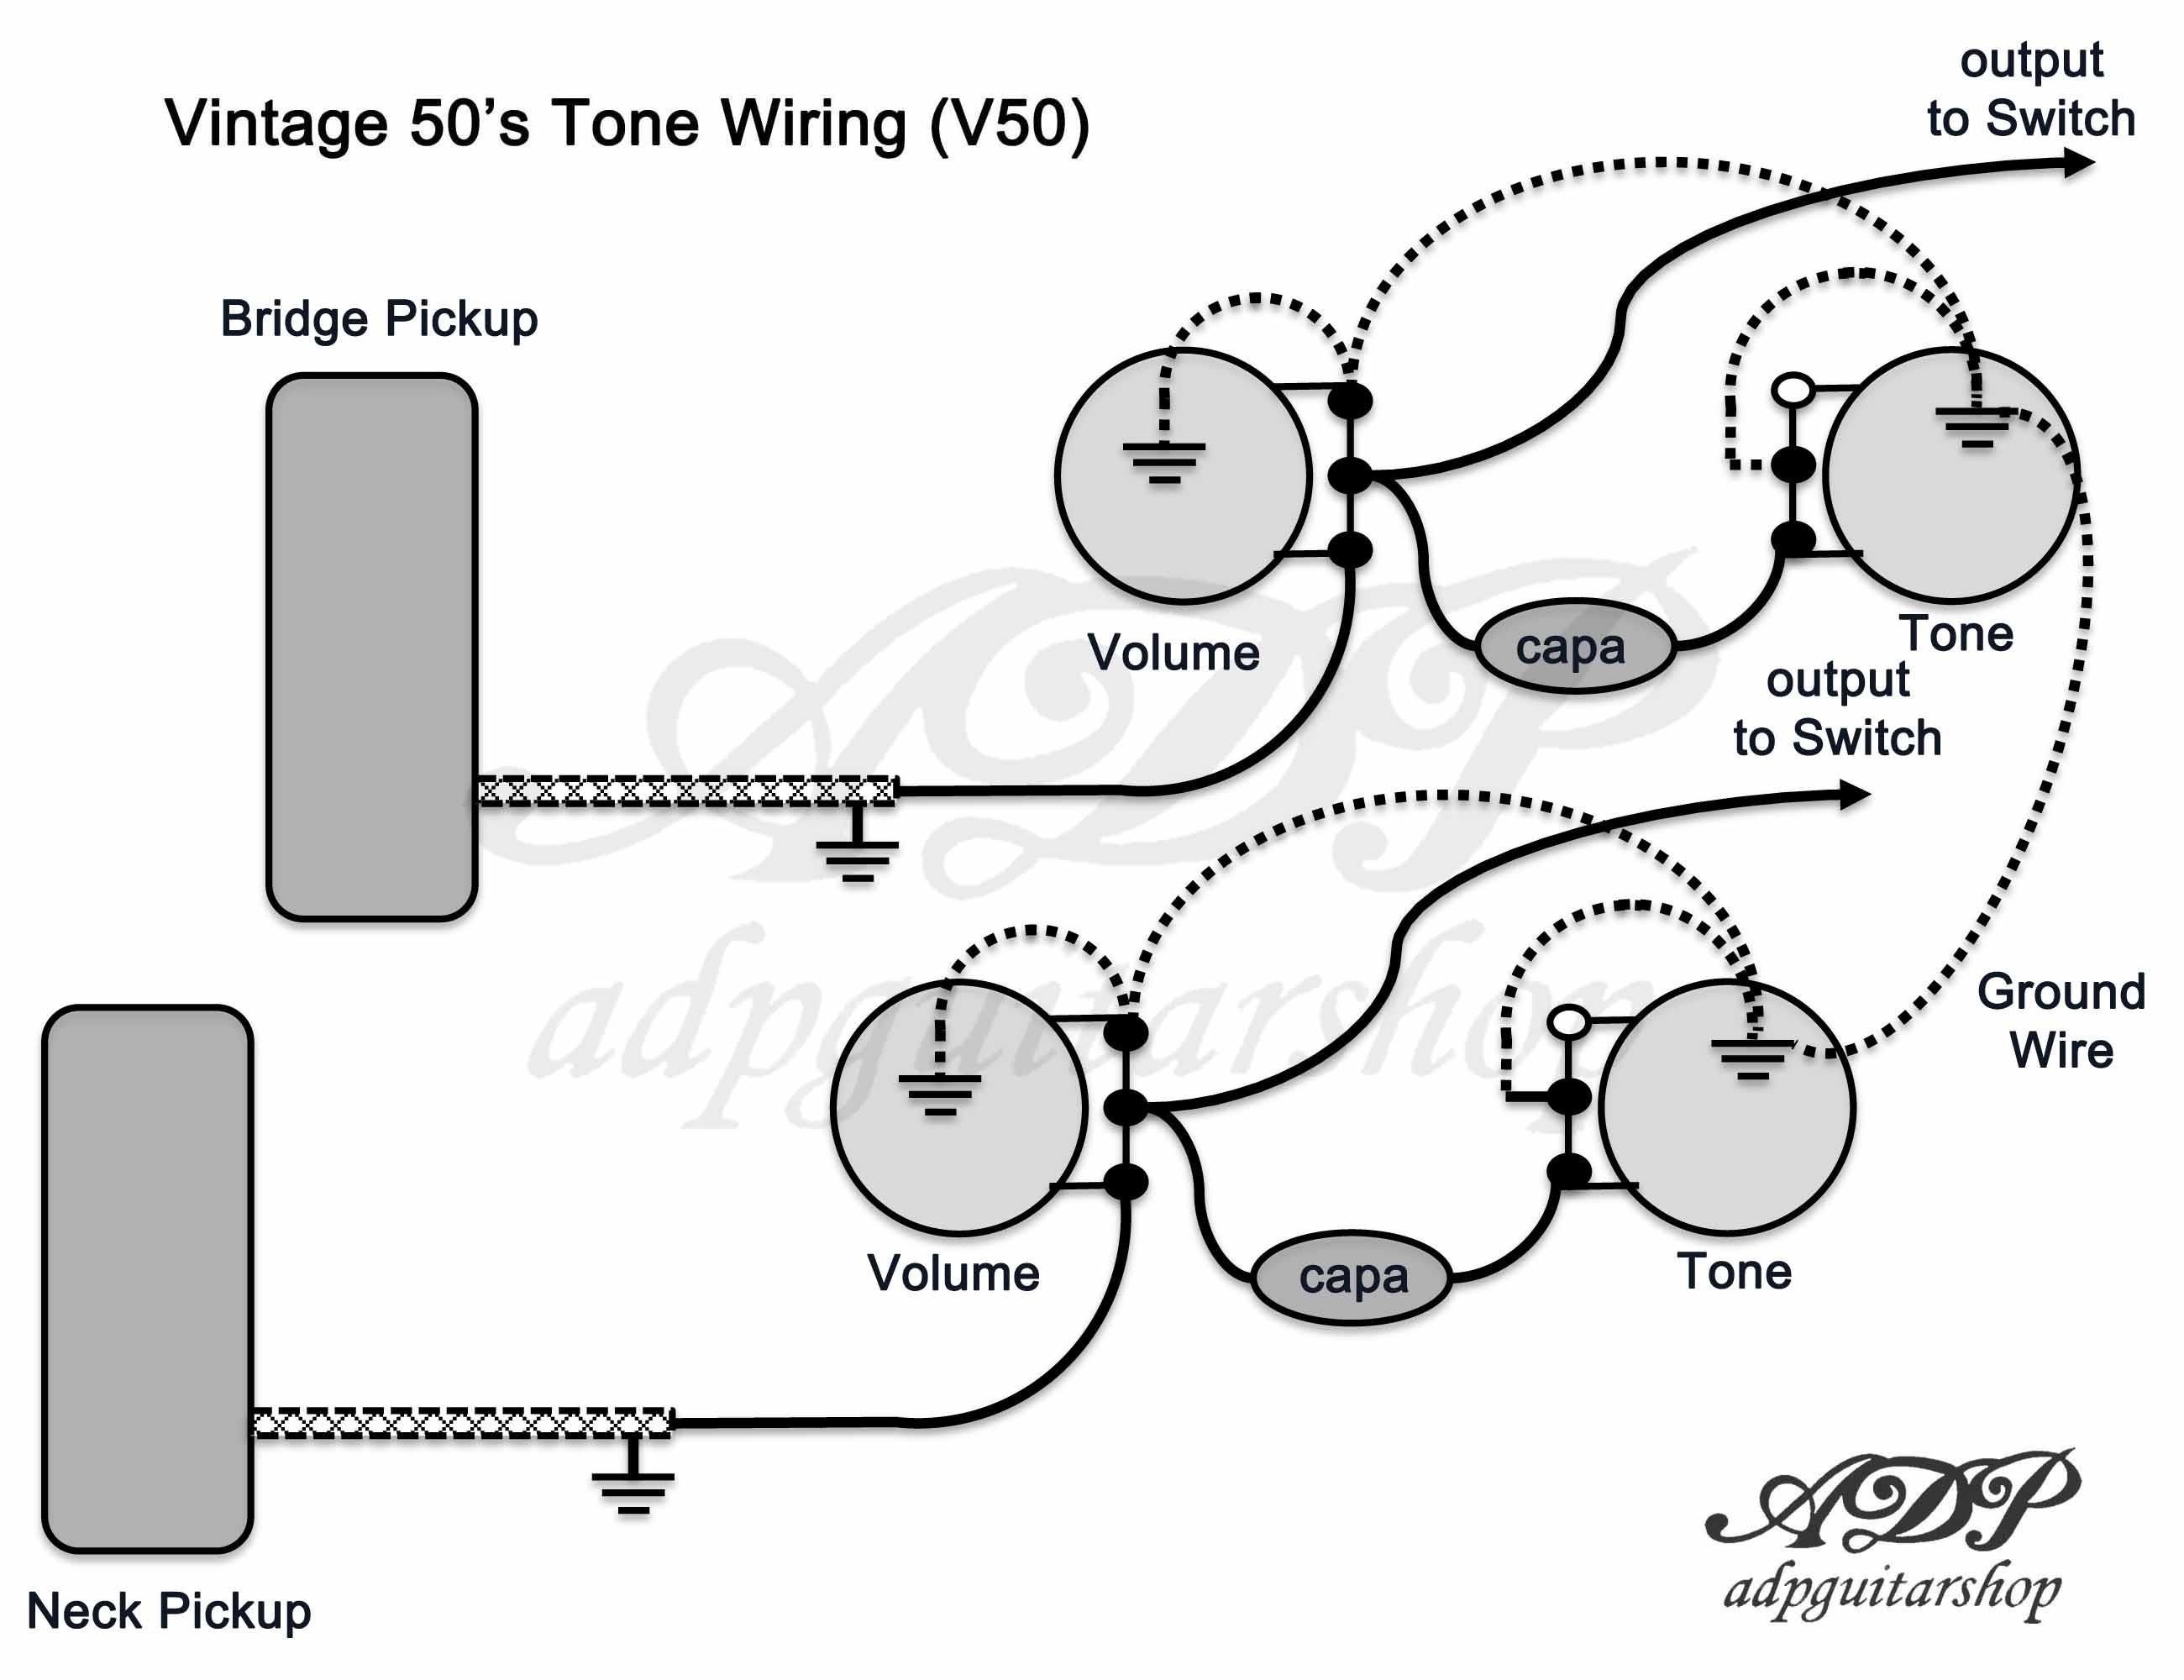 les paul studio wiring diagram Collection-Gibson Les Paul Traditional Wiring Diagram New EpiPhone Les Paul Studio Wiring Diagram New Wiring Diagram 16-f